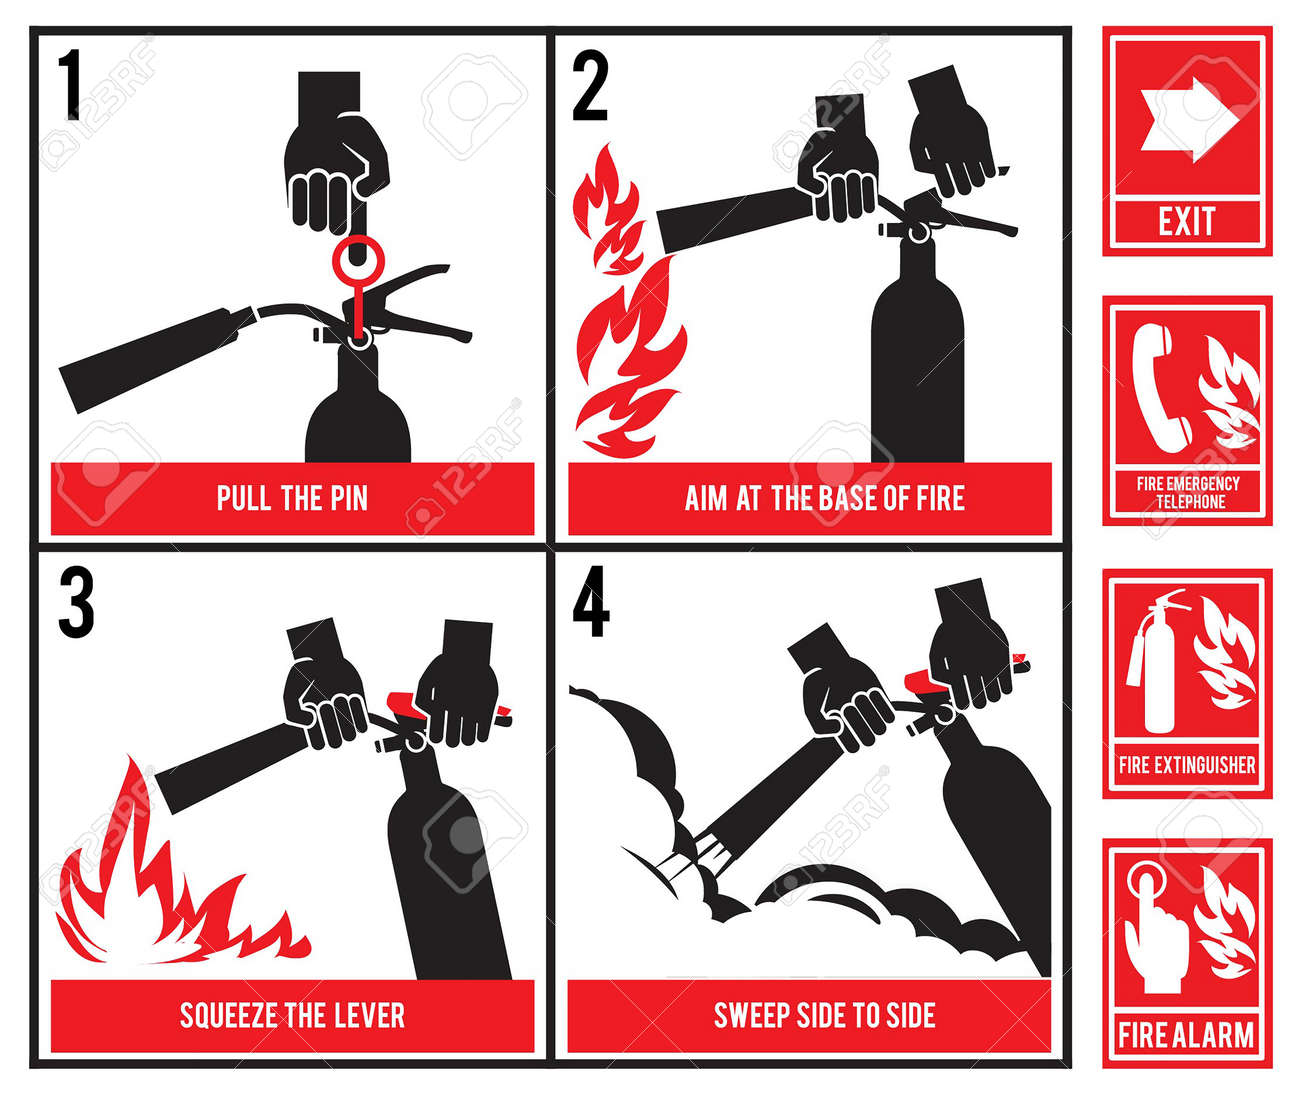 Fire fighting technical illustration. Vector silhouette of fire extinguisher - 167587585